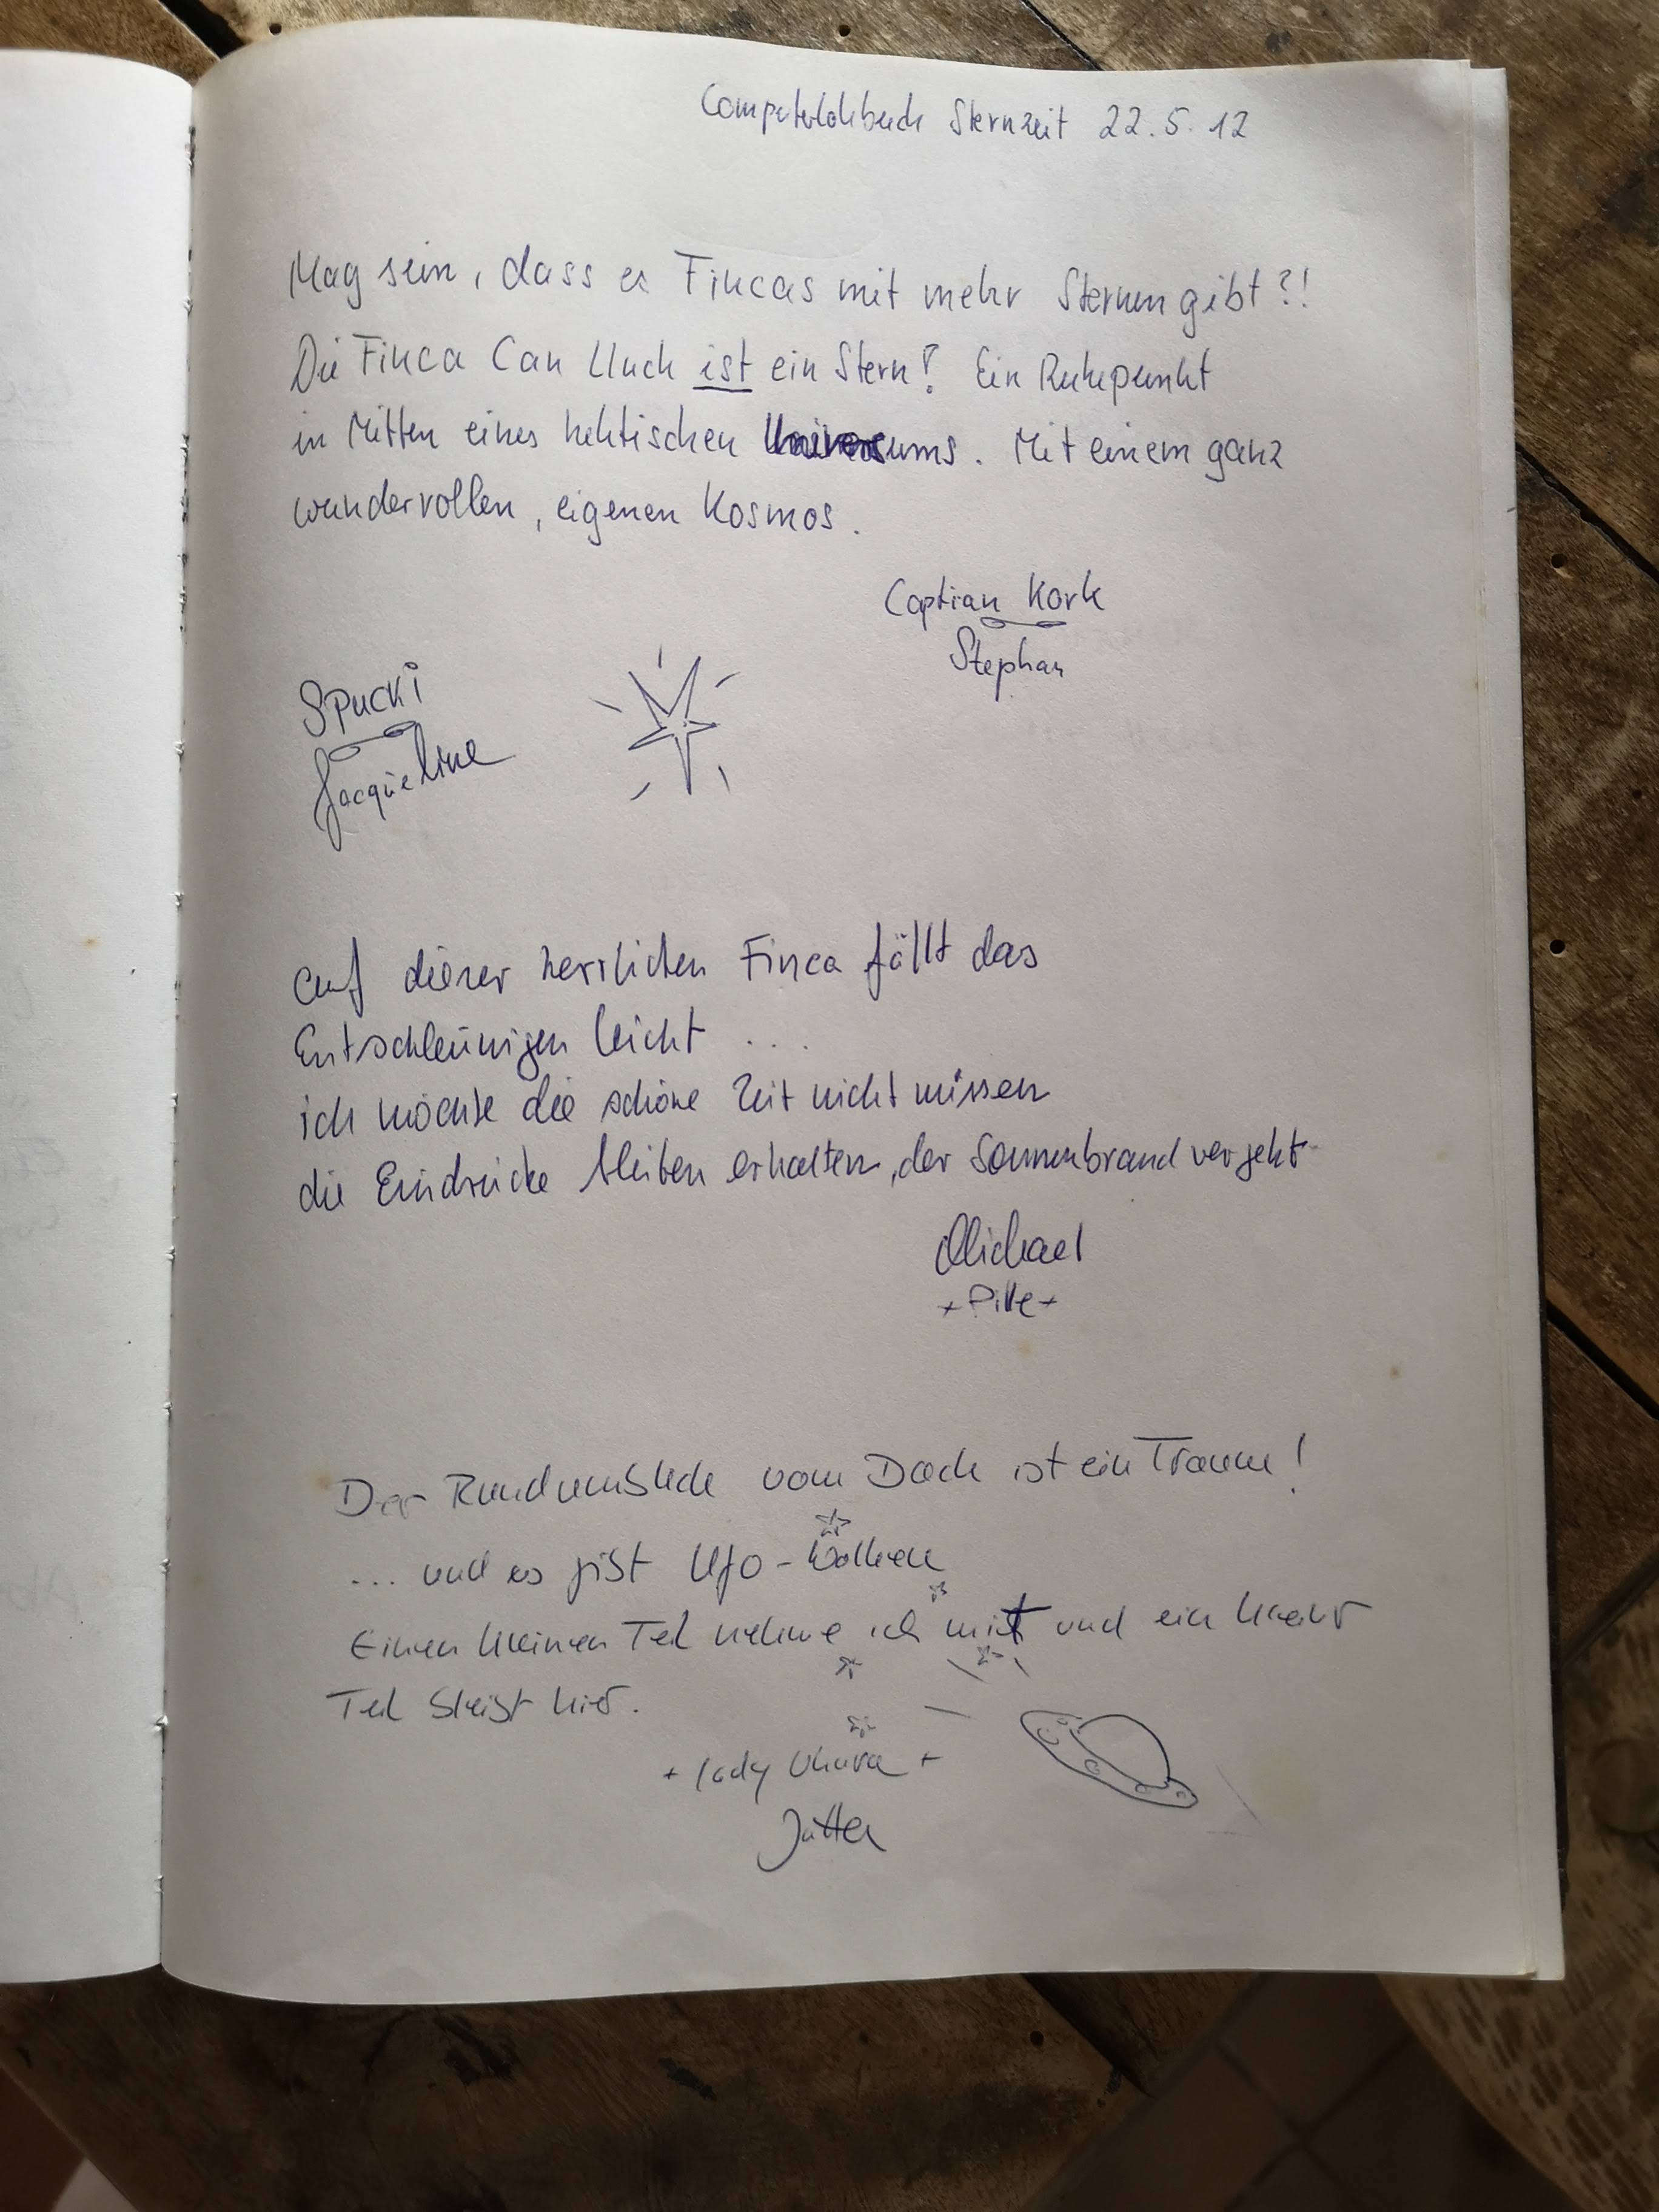 Guestbook entry